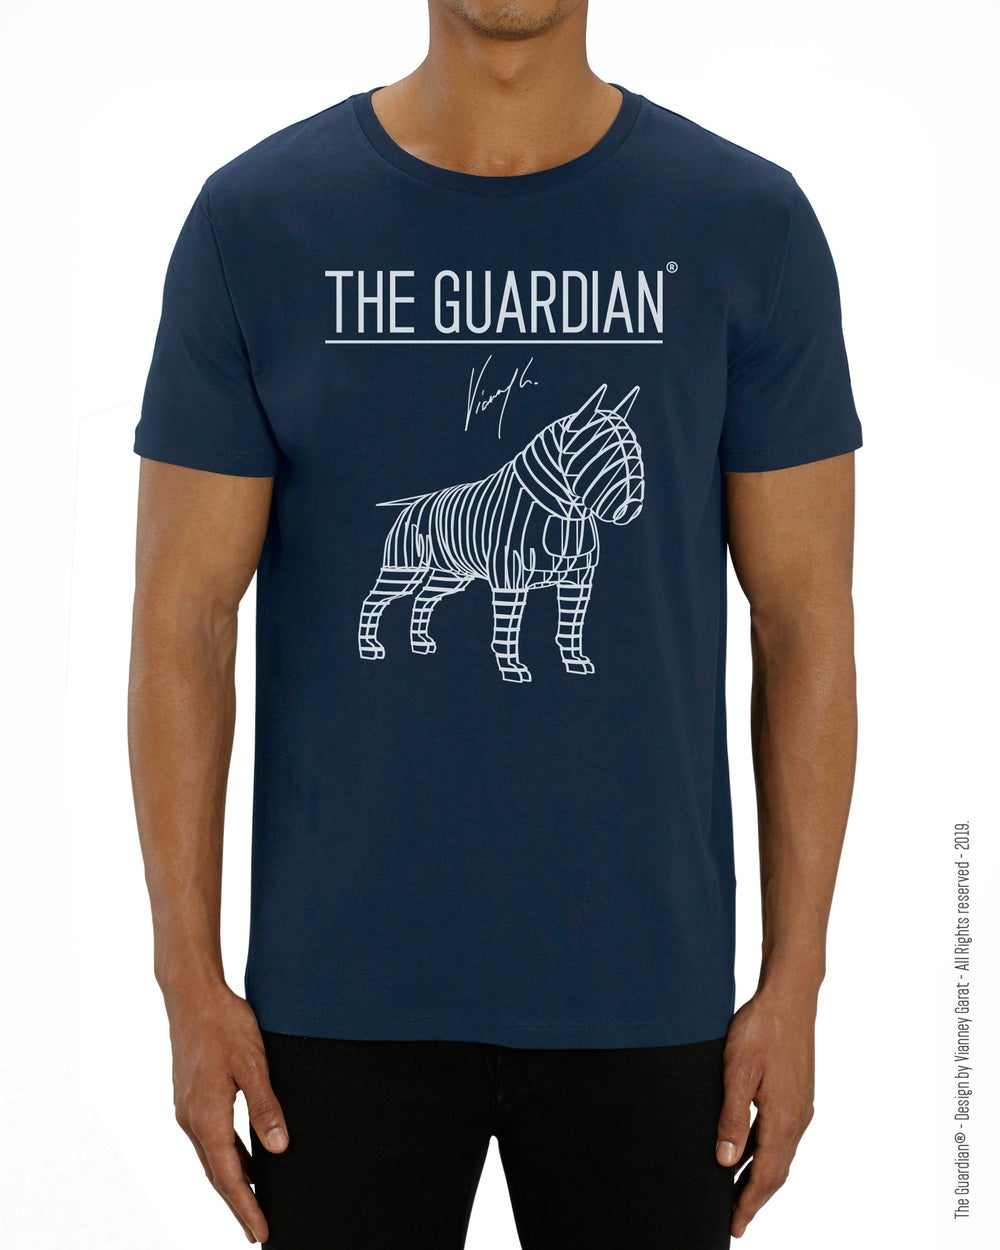 Image of T-SHIRT THE GUARDIAN® - BLUE NAVY EDITION - Limited Edition